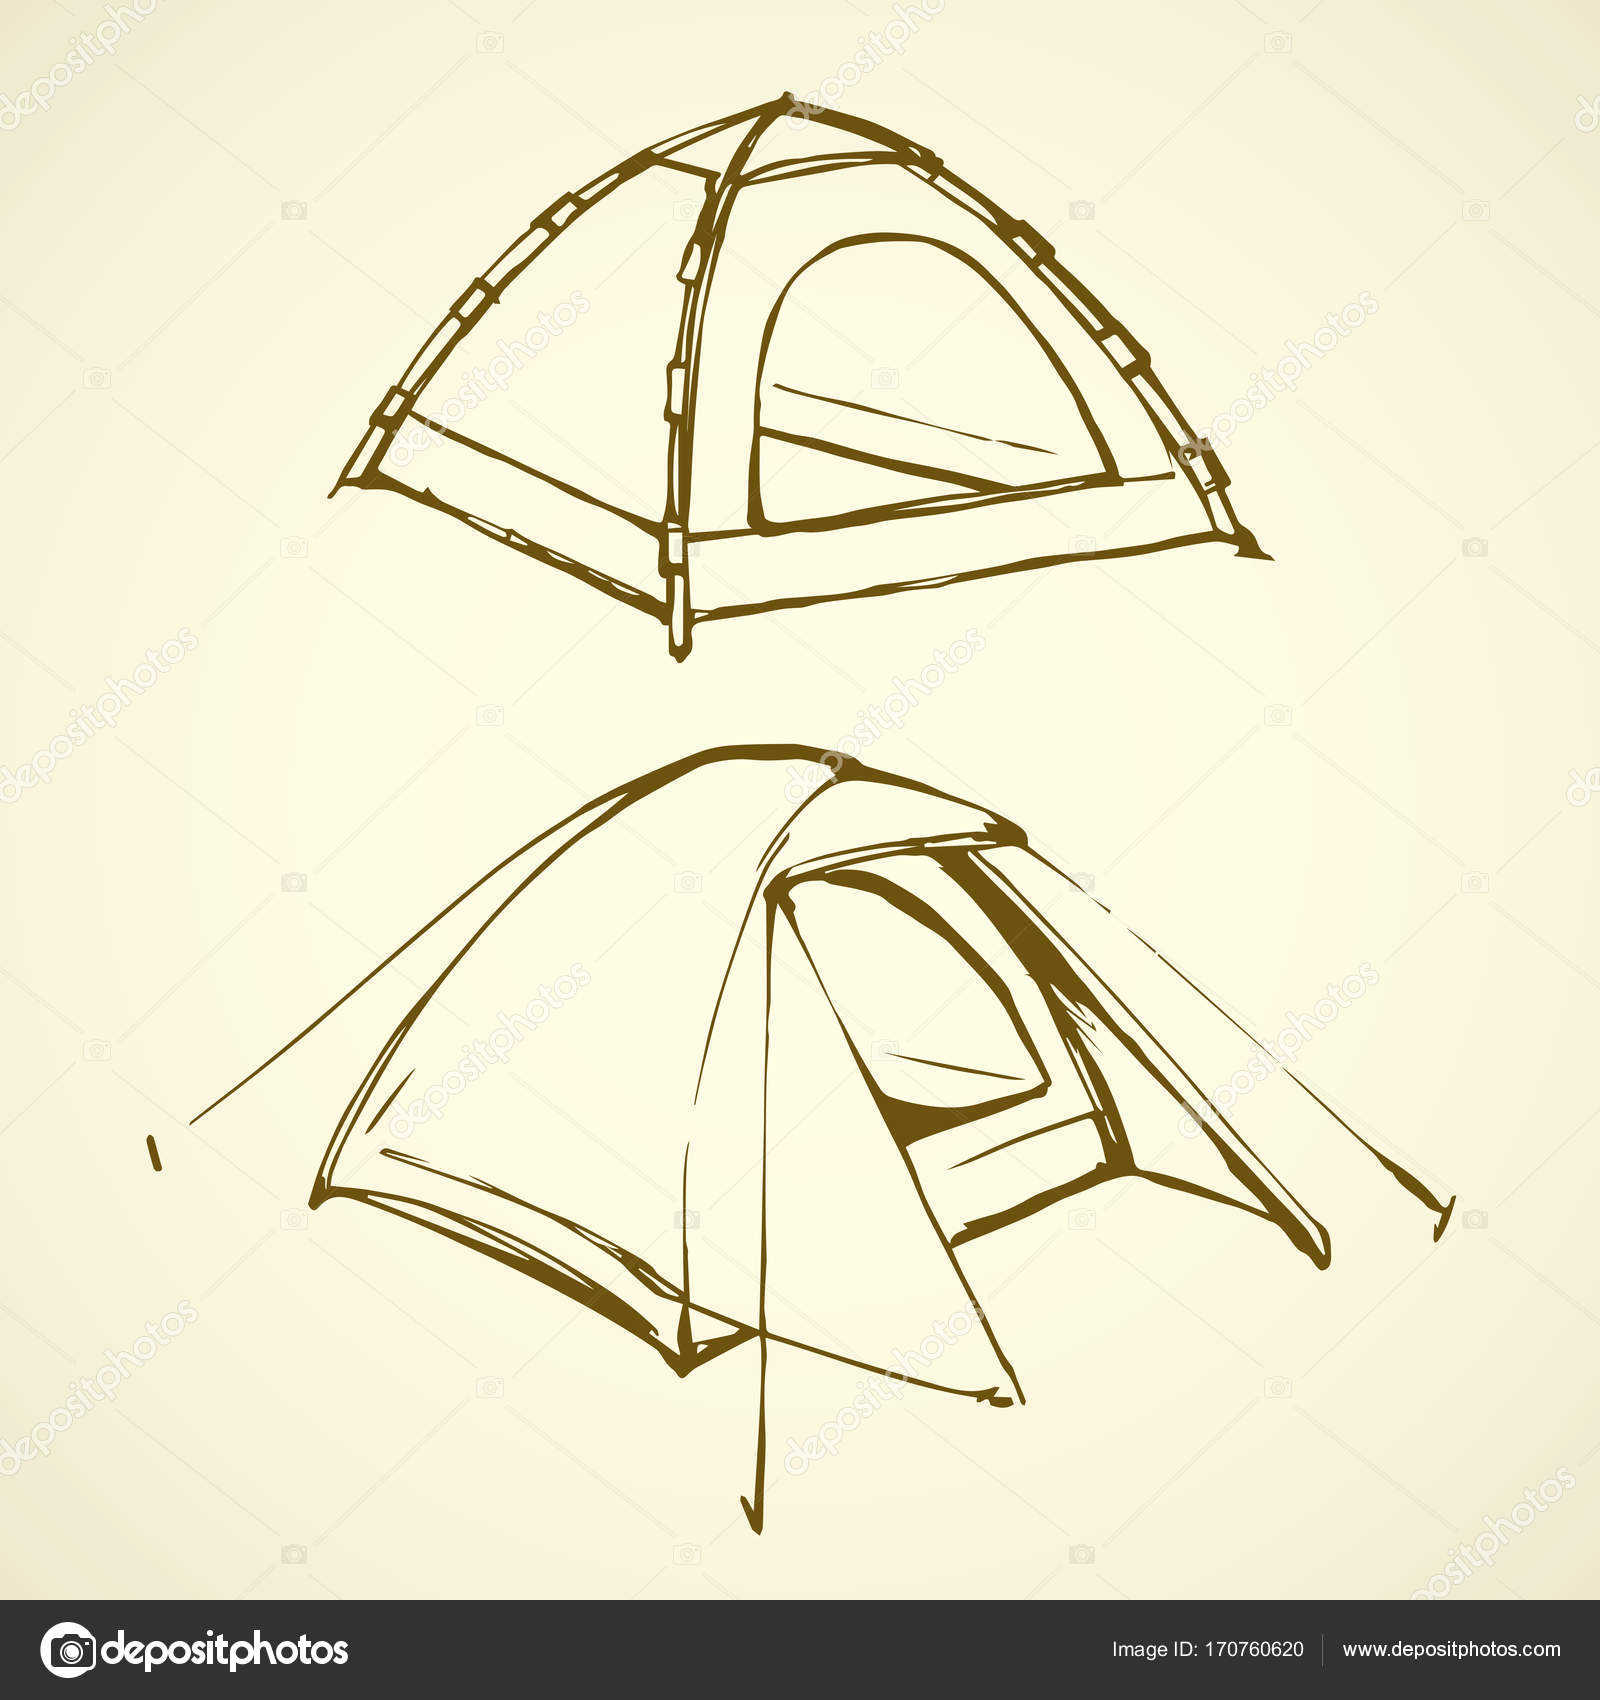 Tent. Vector drawing u2014 Stock Vector  sc 1 st  Depositphotos & Tent. Vector drawing u2014 Stock Vector © Marinka #170760620